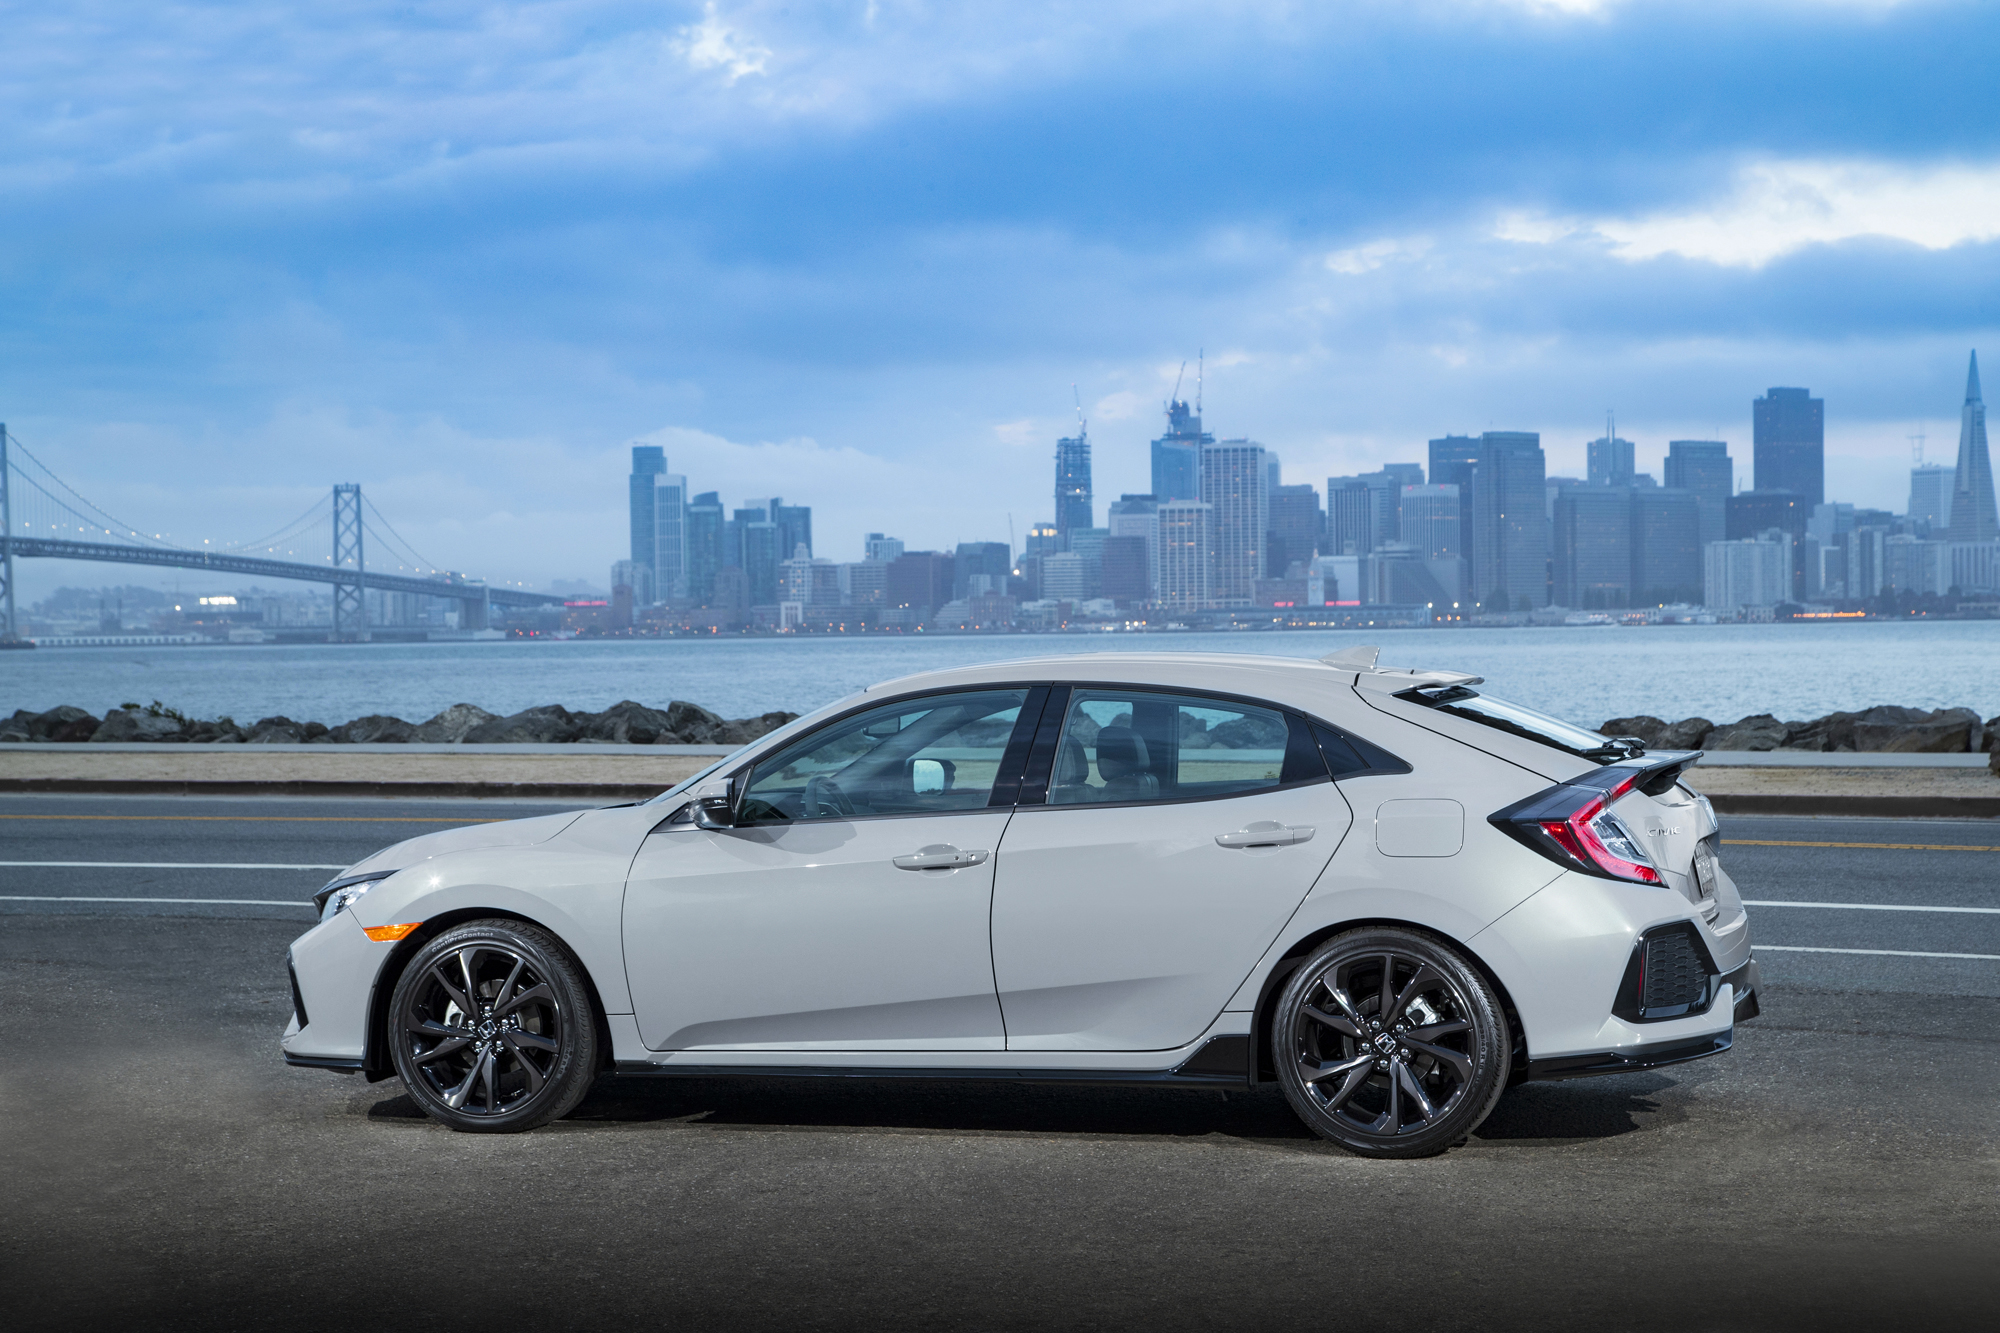 2017 Honda Civic Hatchback_067.jpg